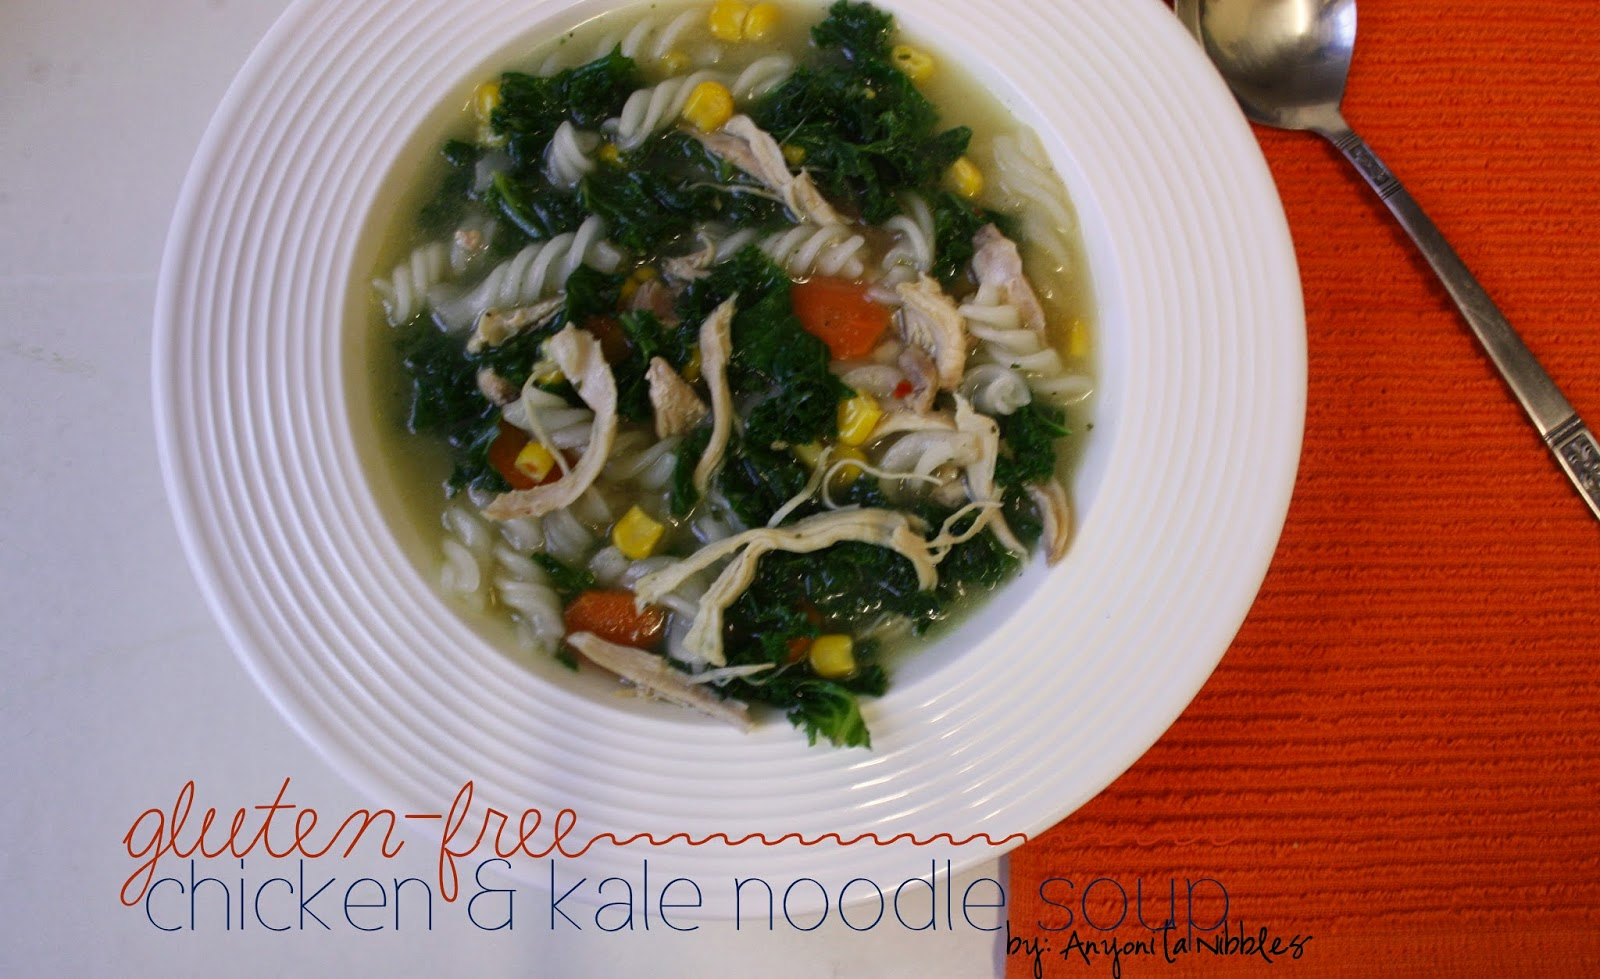 http://www.anyonita-nibbles.co.uk/2014/03/gluten-free-chicken-kale-noodle-soup.html